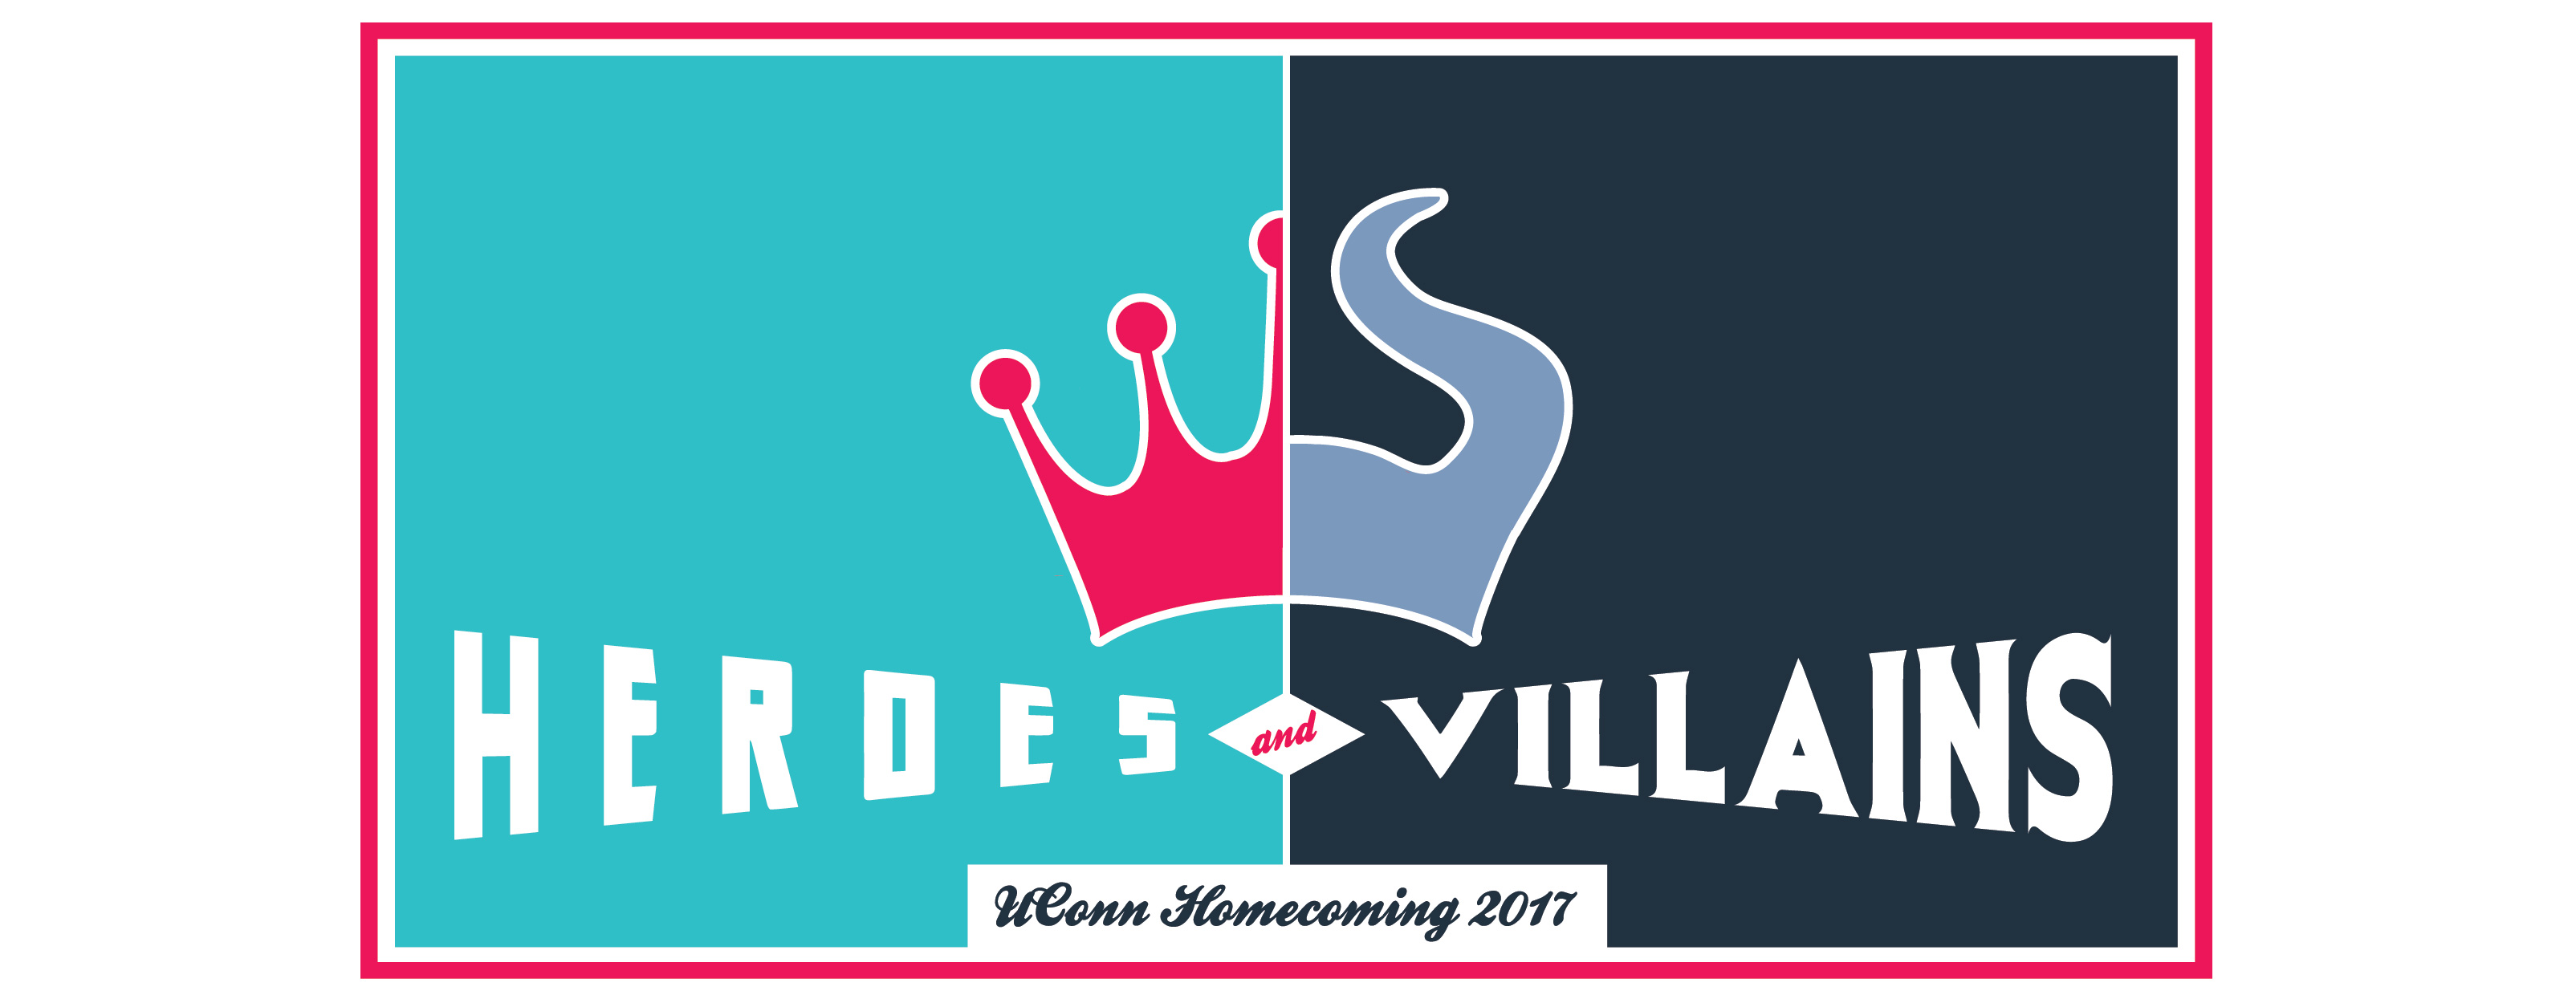 Homecoming, Student Activities, Heroes, Villains, Theme